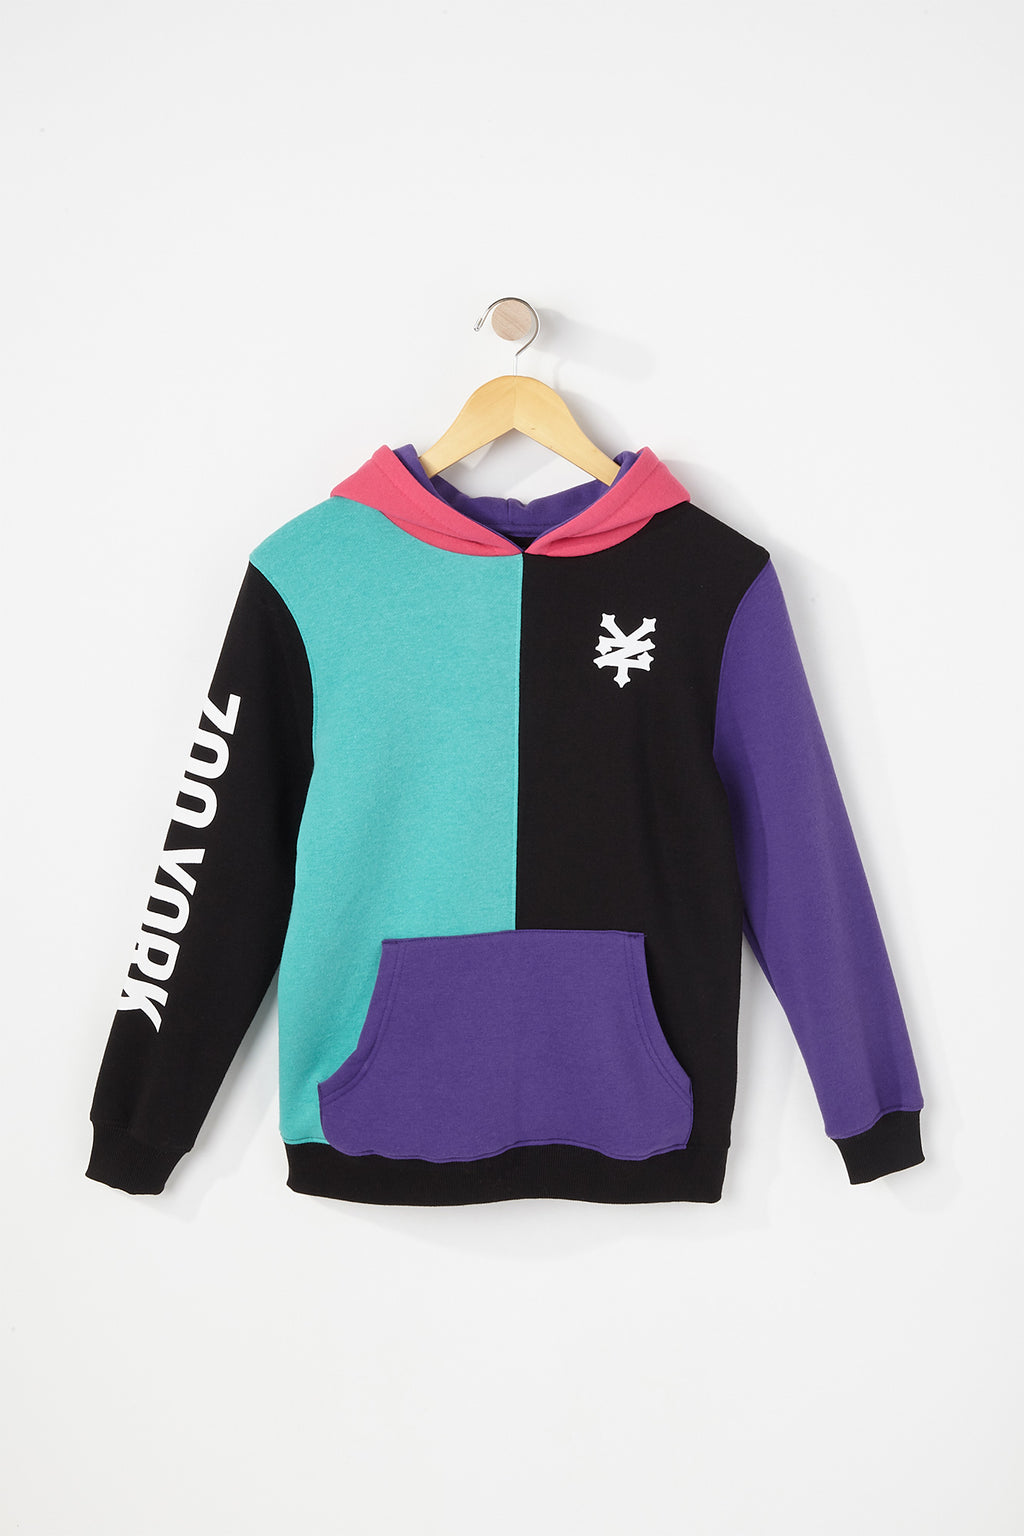 Zoo York Boys Graphic Popover Hoodie